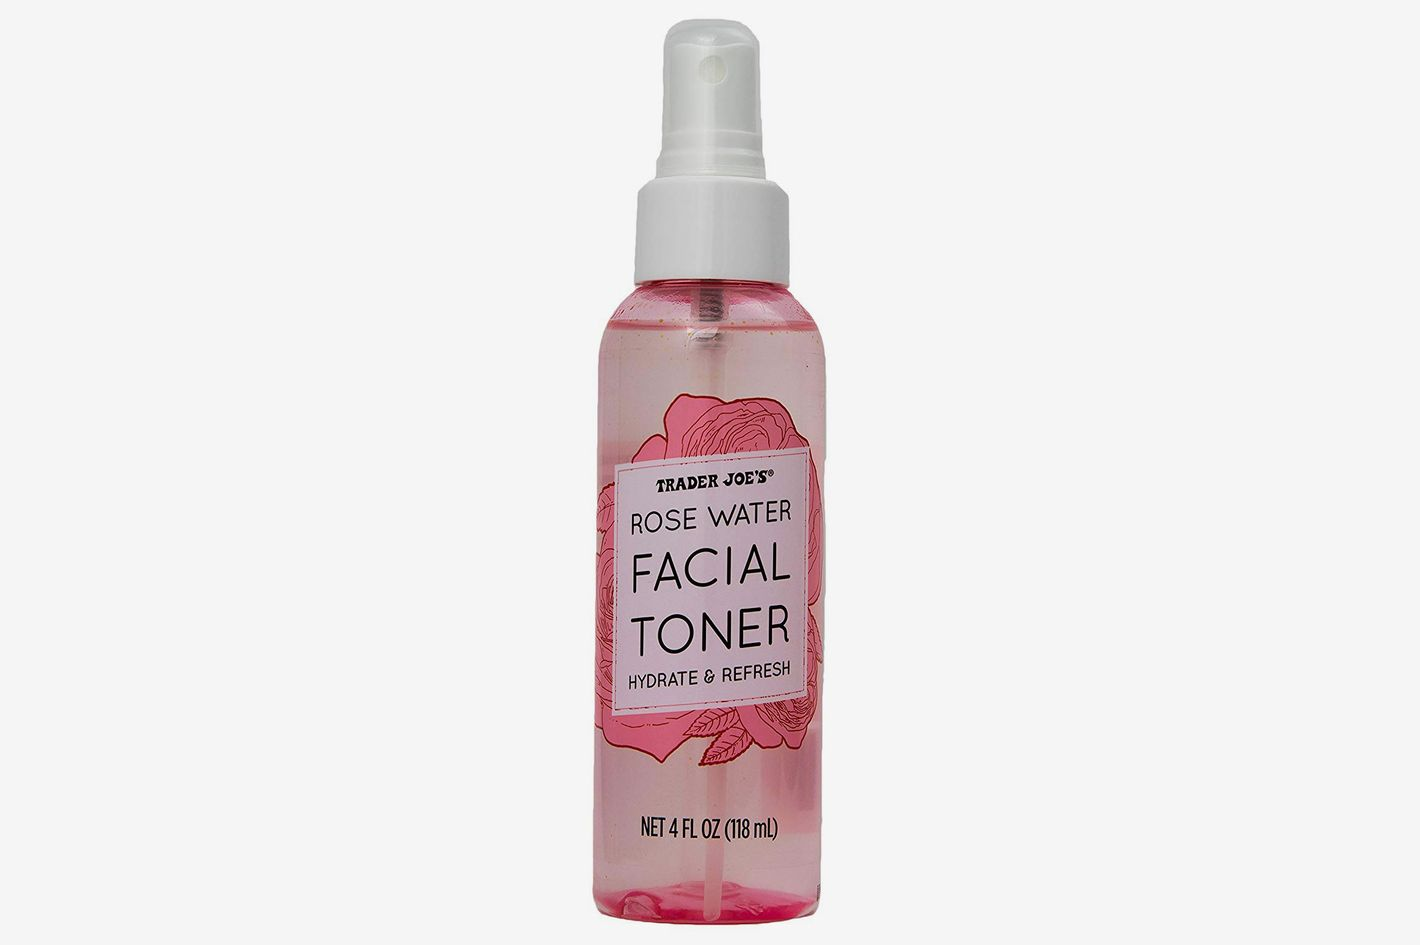 Rose Water Facial Toner Hydrate and Refresh by Trader Joe's